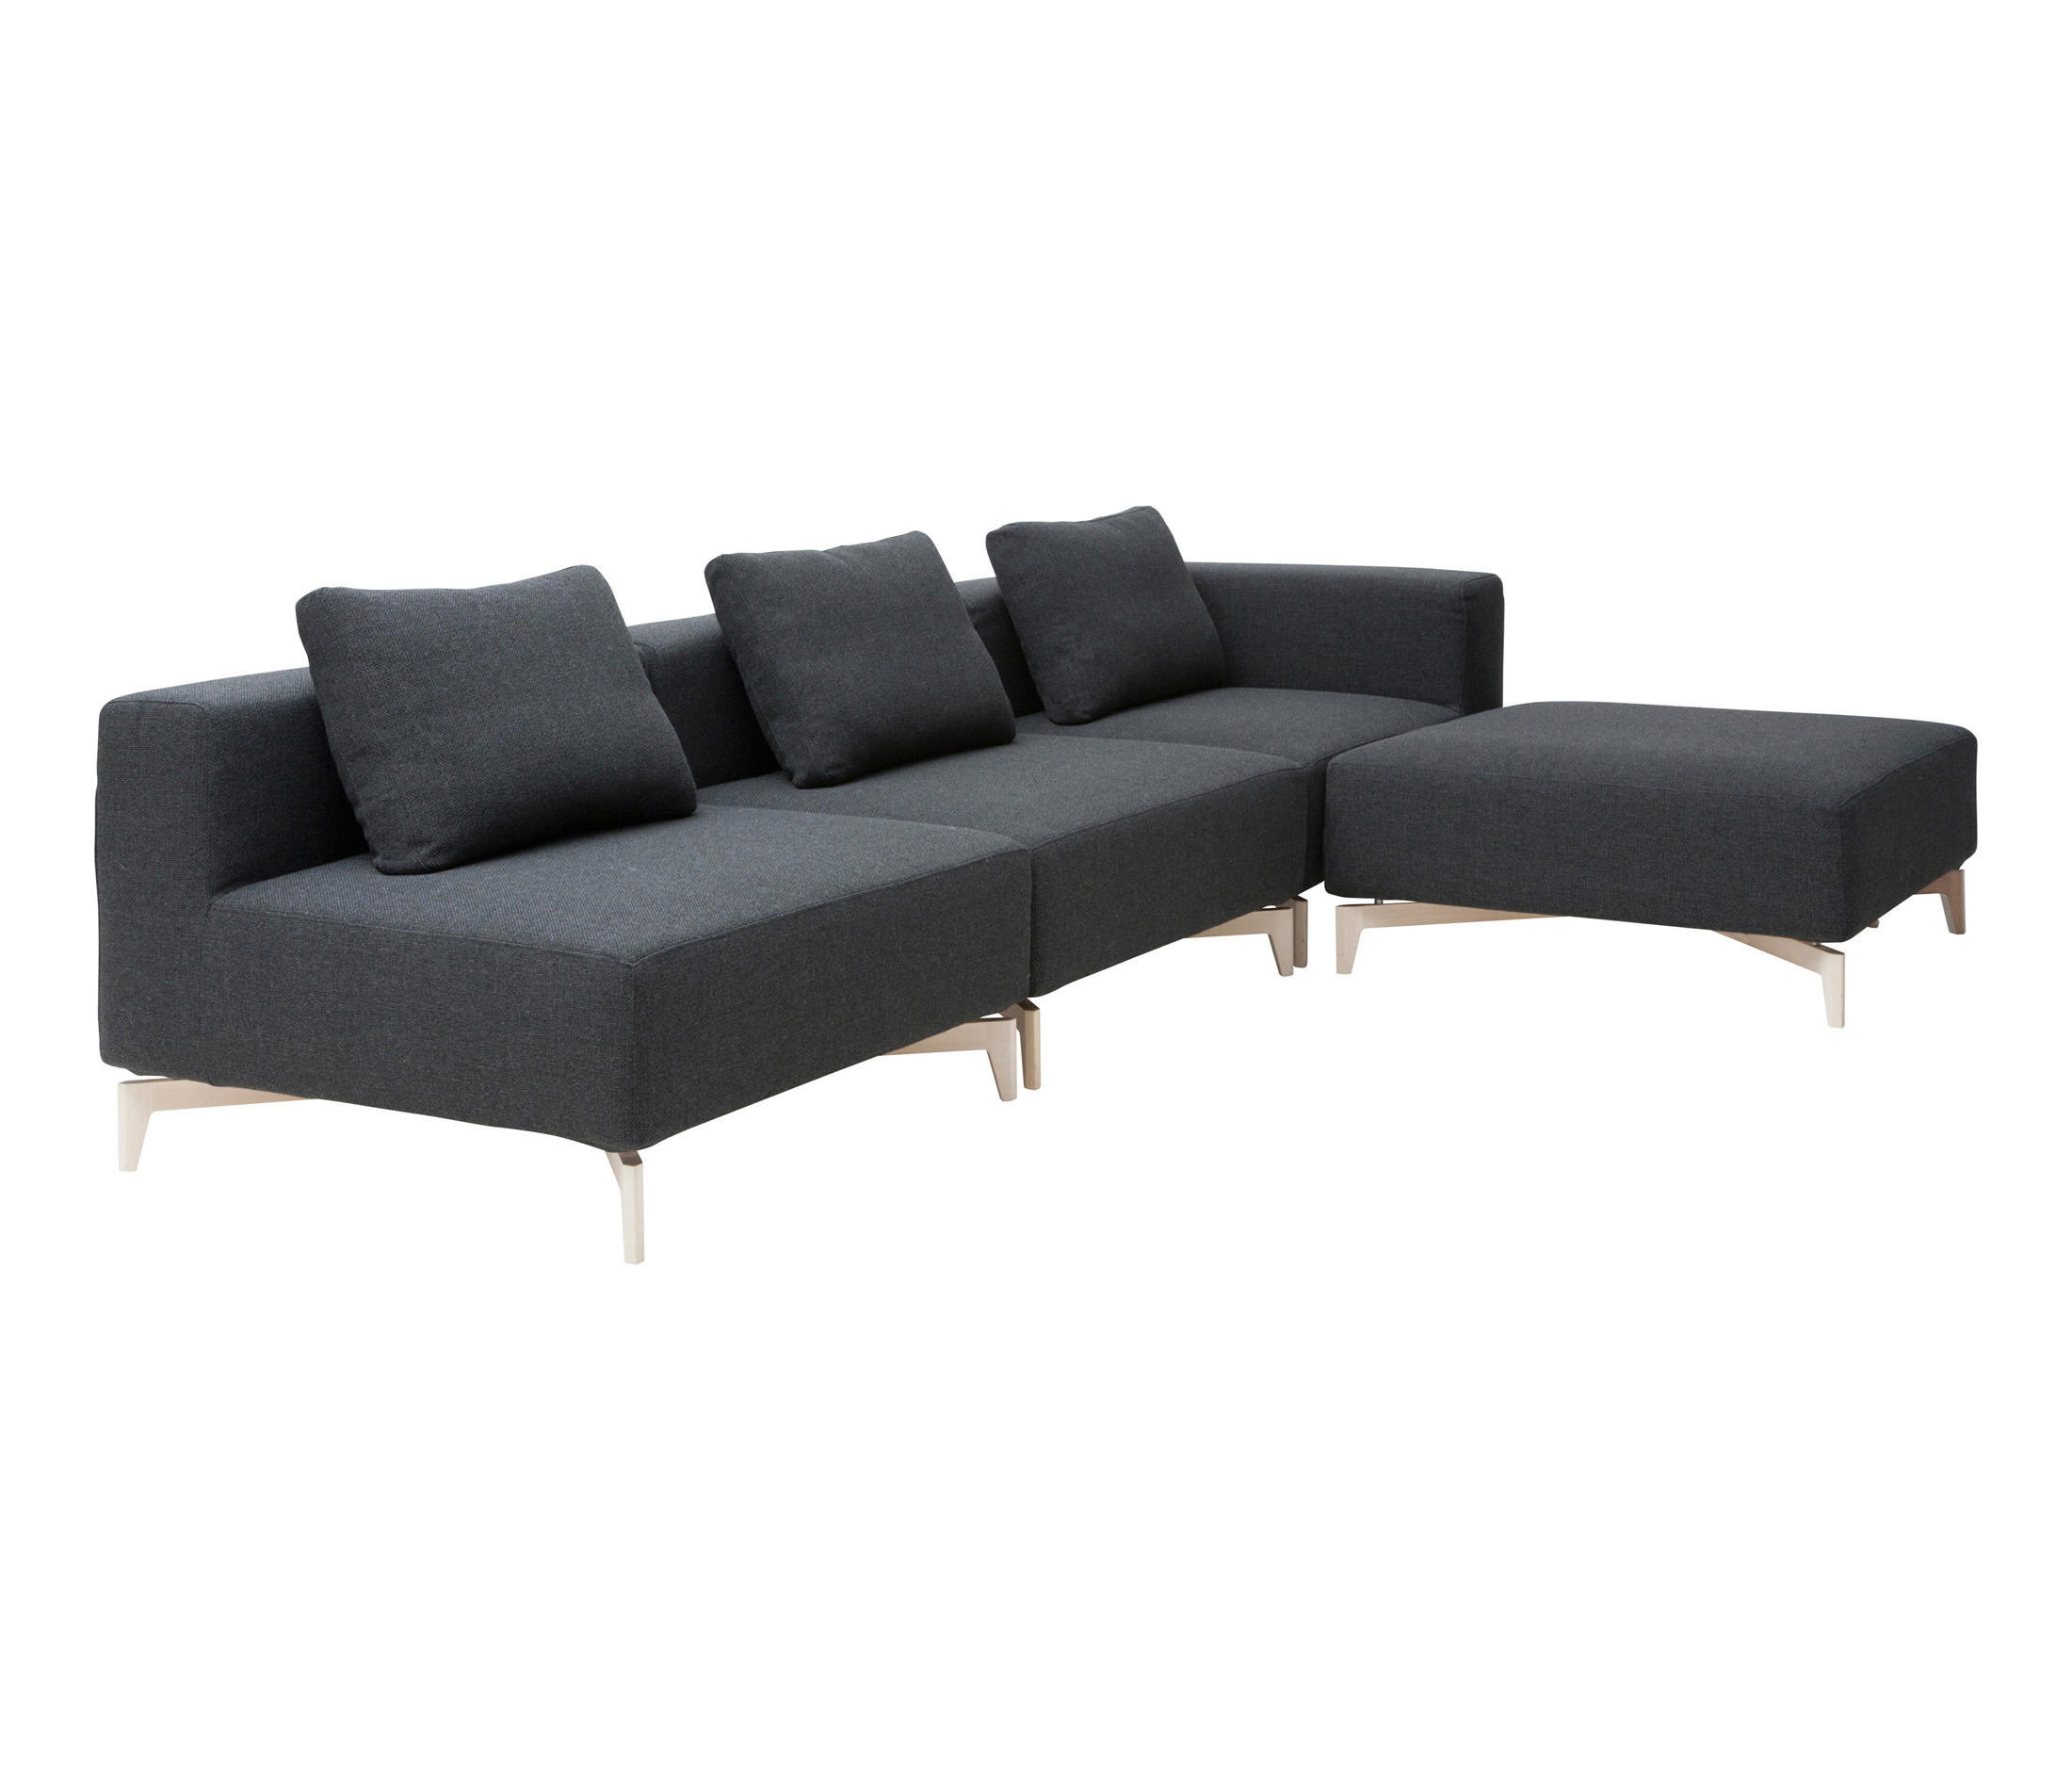 Sofá Cama Chaise Longue Etdg Passion sofa sofas From softline A S Architonic